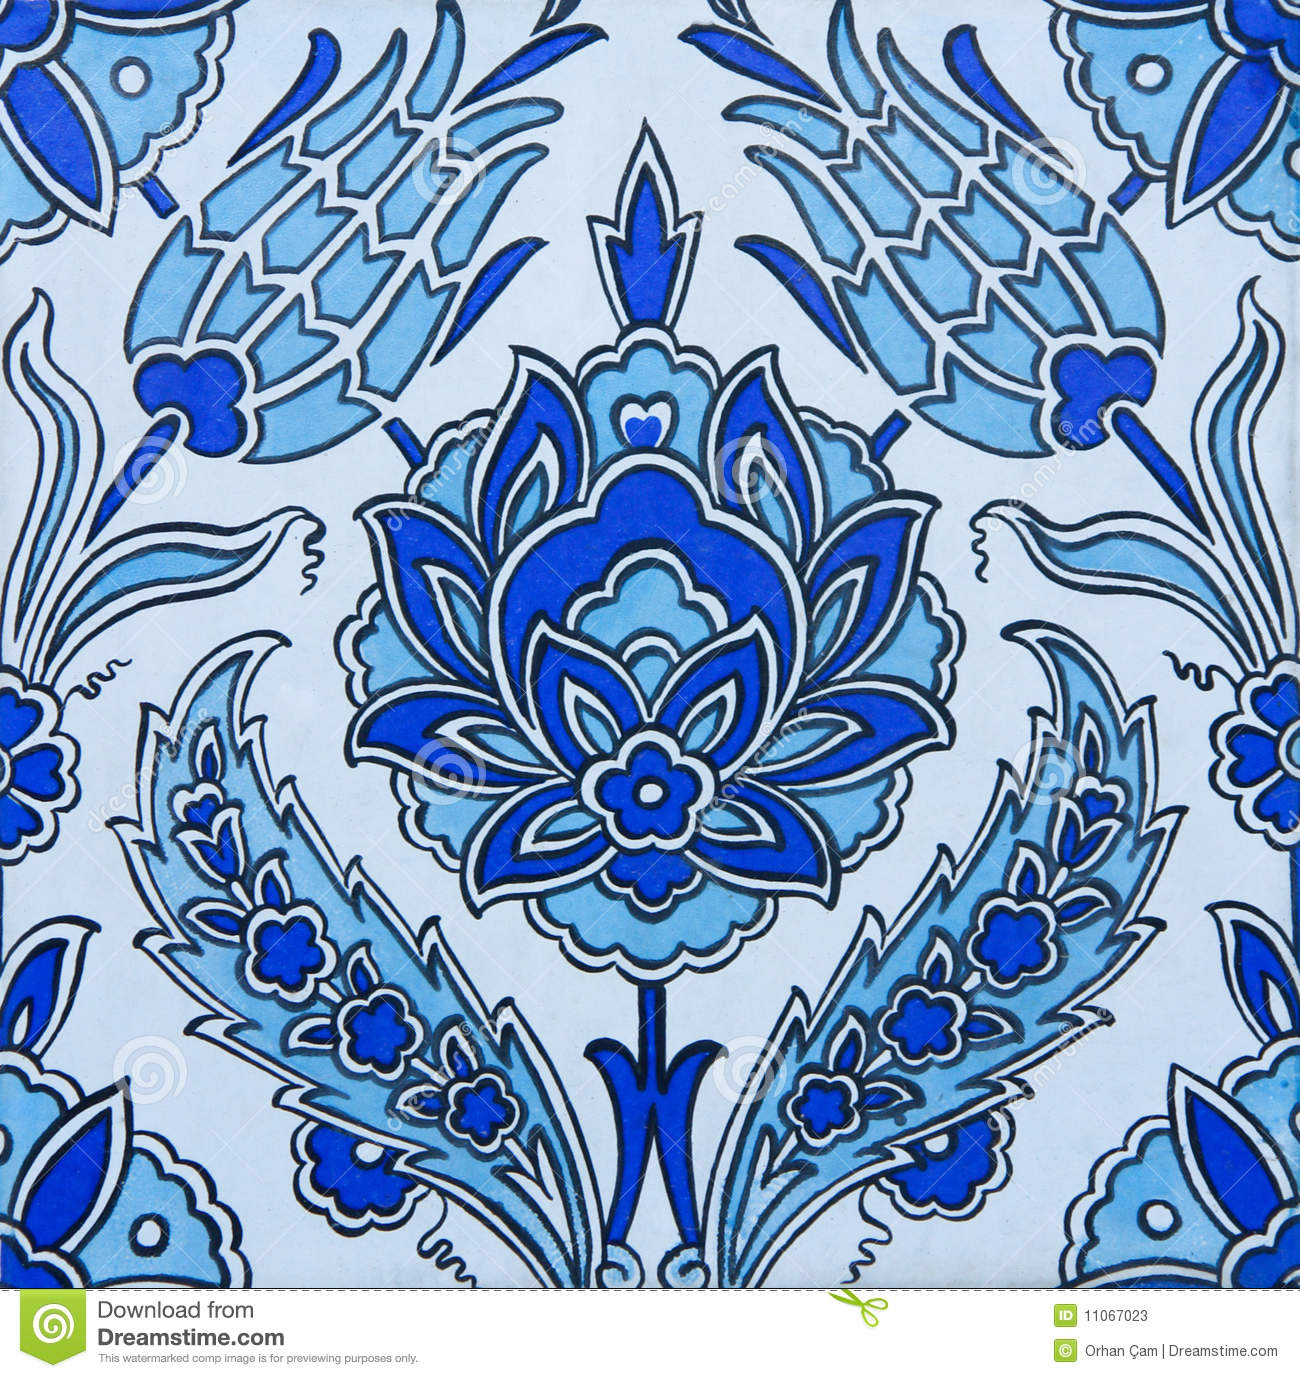 Turkish Tiles Stock Photos  Image 11067023